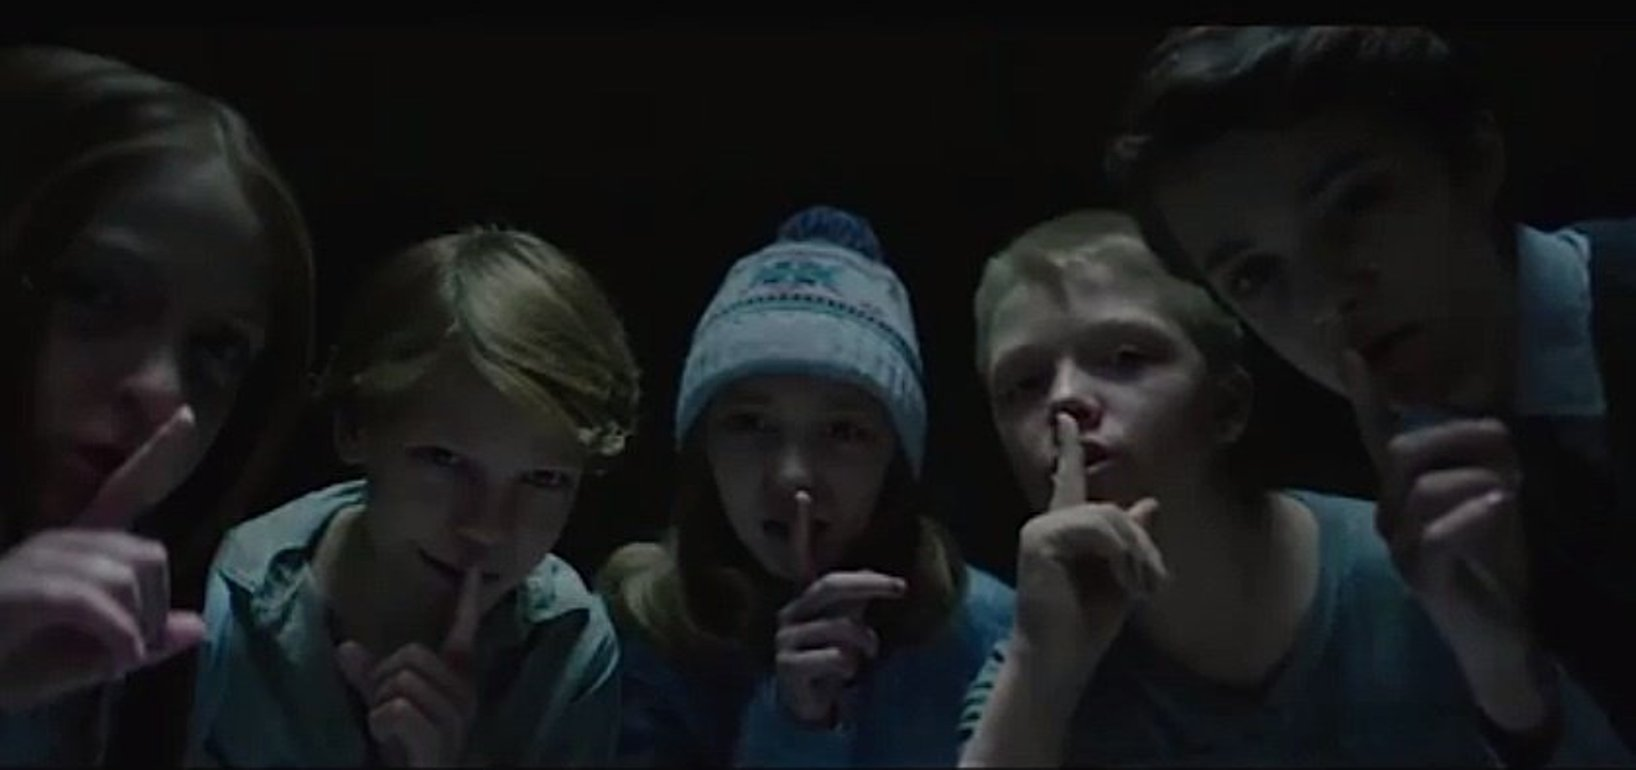 Bughuul reminds us there's no talking in the theater or else he sends these kids after you.